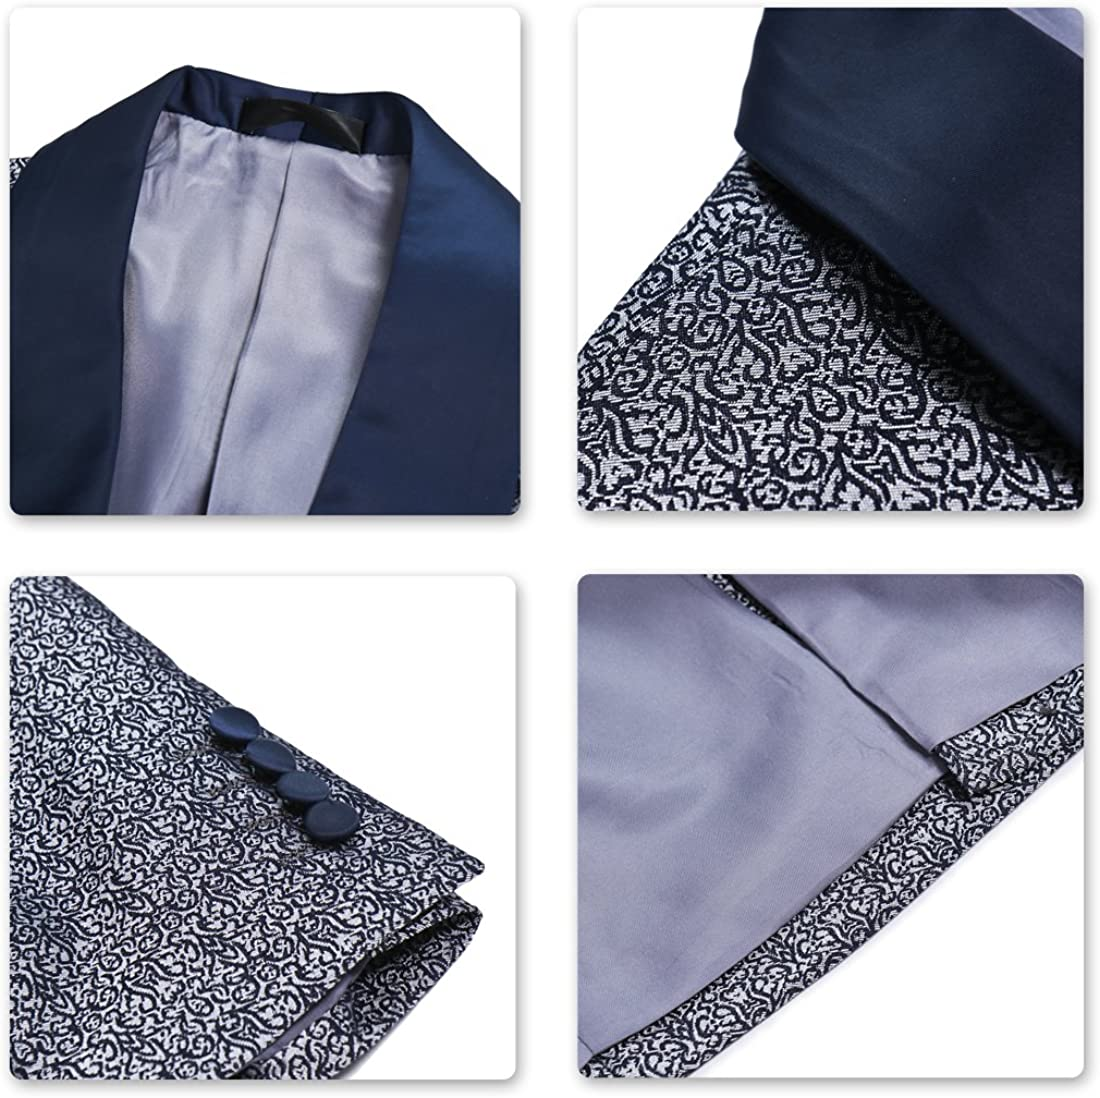 Sliktaa Mens Suits 3 Pieces Formal Classic Business Wedding Dress Button Down Casual Jacket Vest and Trousers